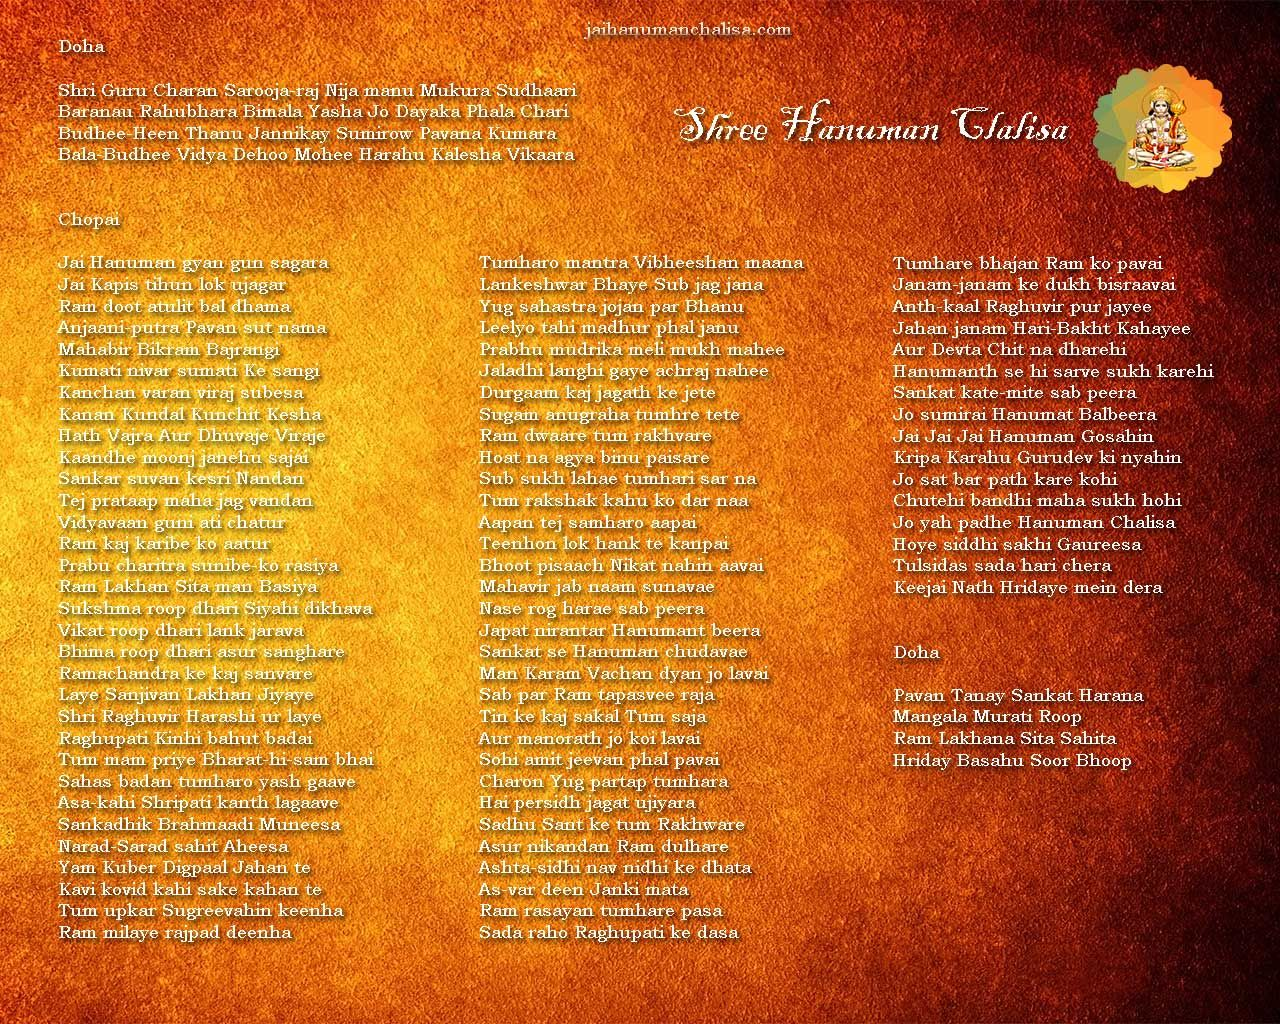 download full hanuman chalisa in english in wallpaper format for